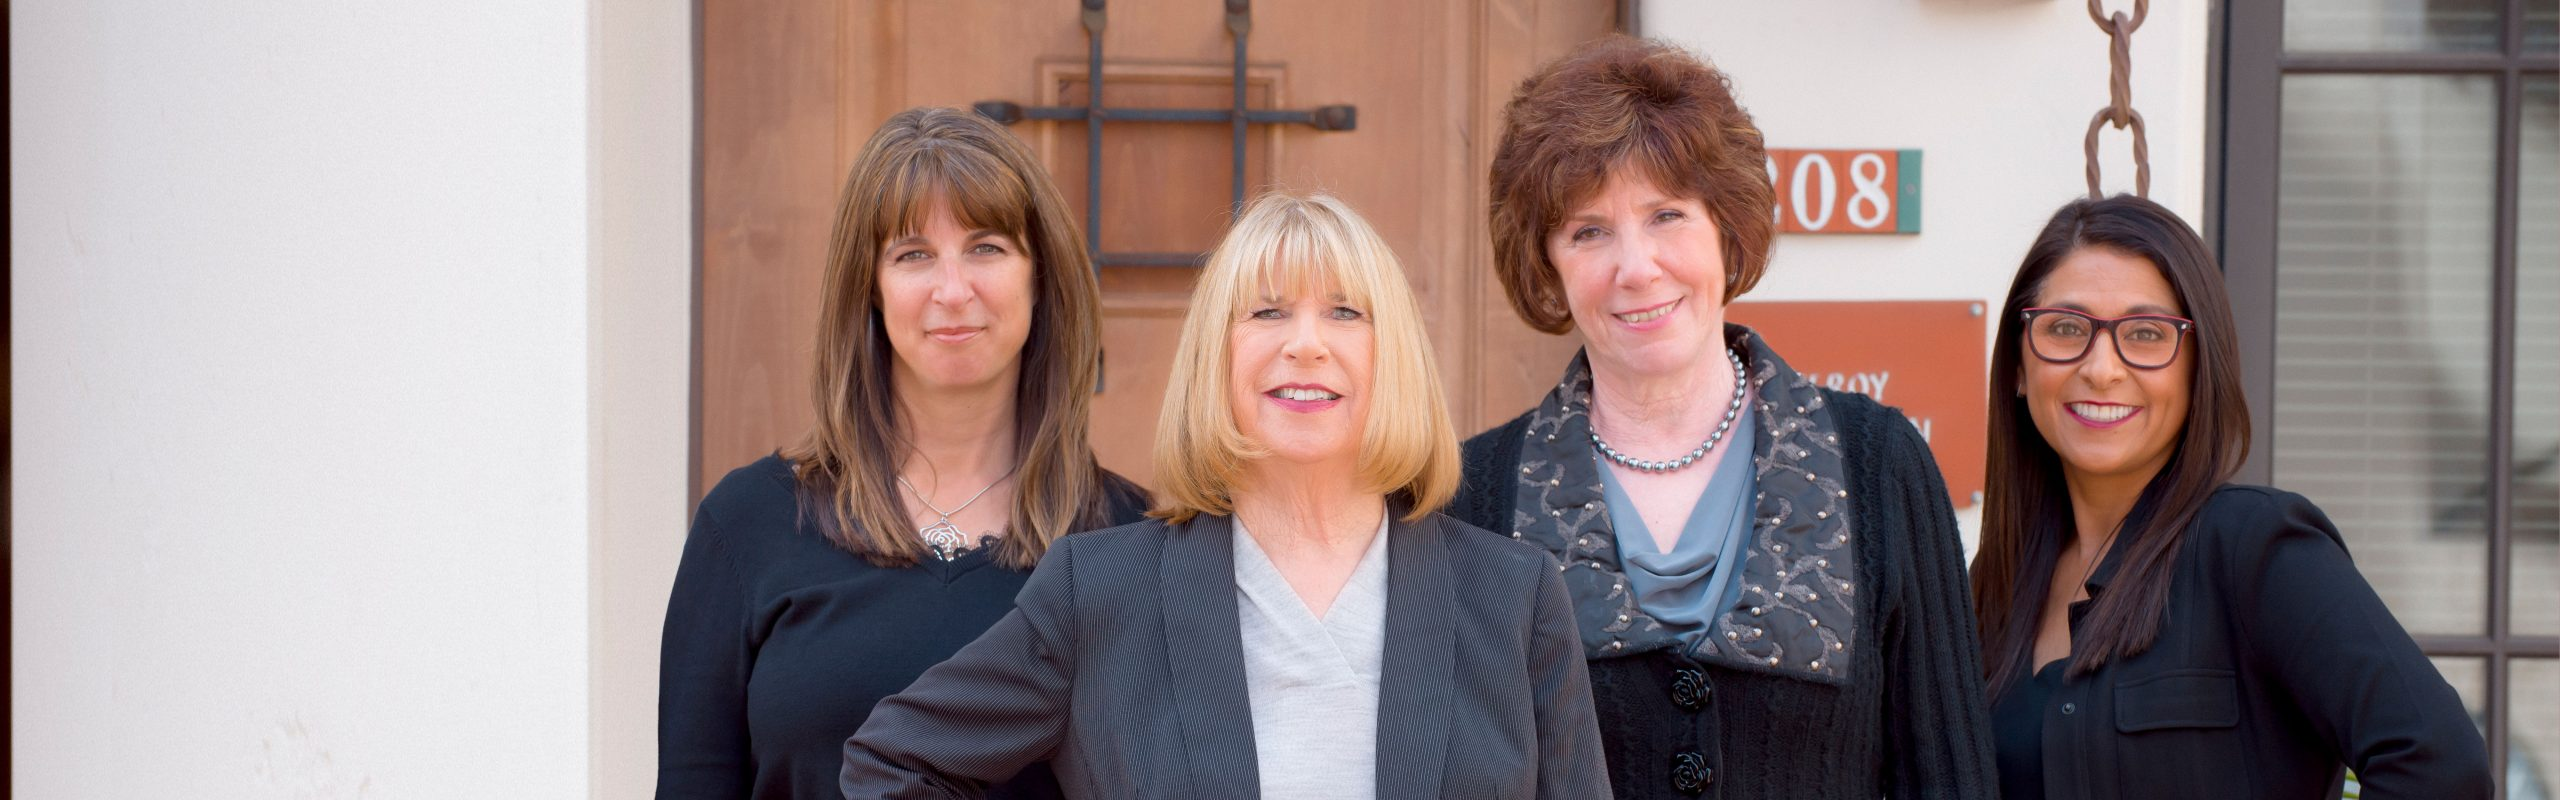 Gilroy Foundation team photo with Donna Pray. Deb Sanchez, and Vicki Campanella